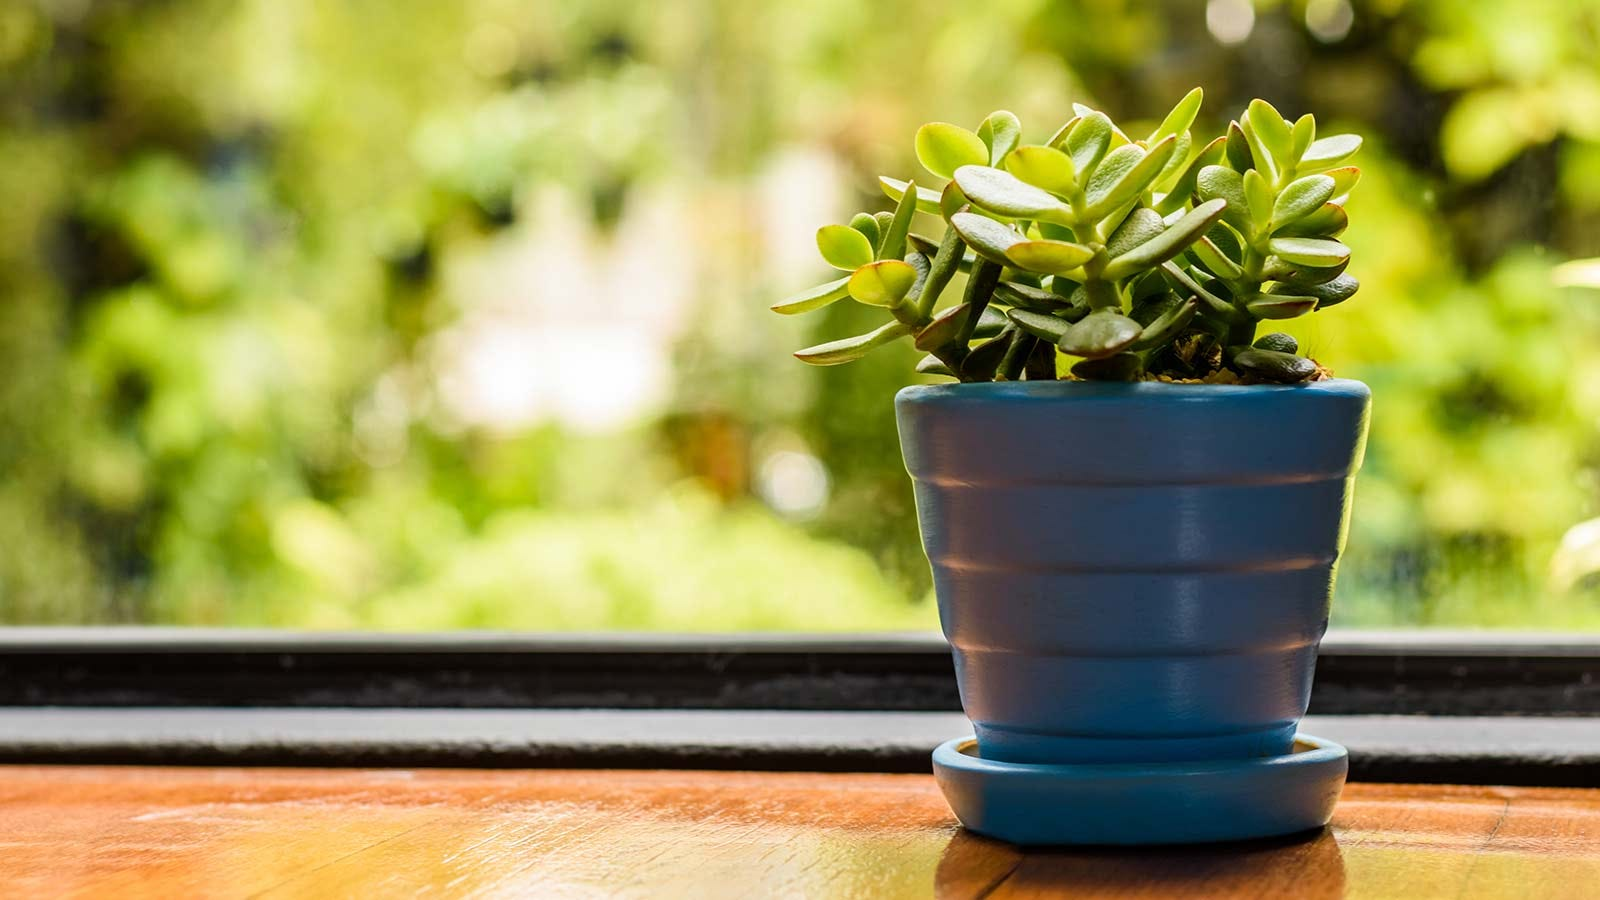 A small jade plant in a blue pot sitting on a windowsill.